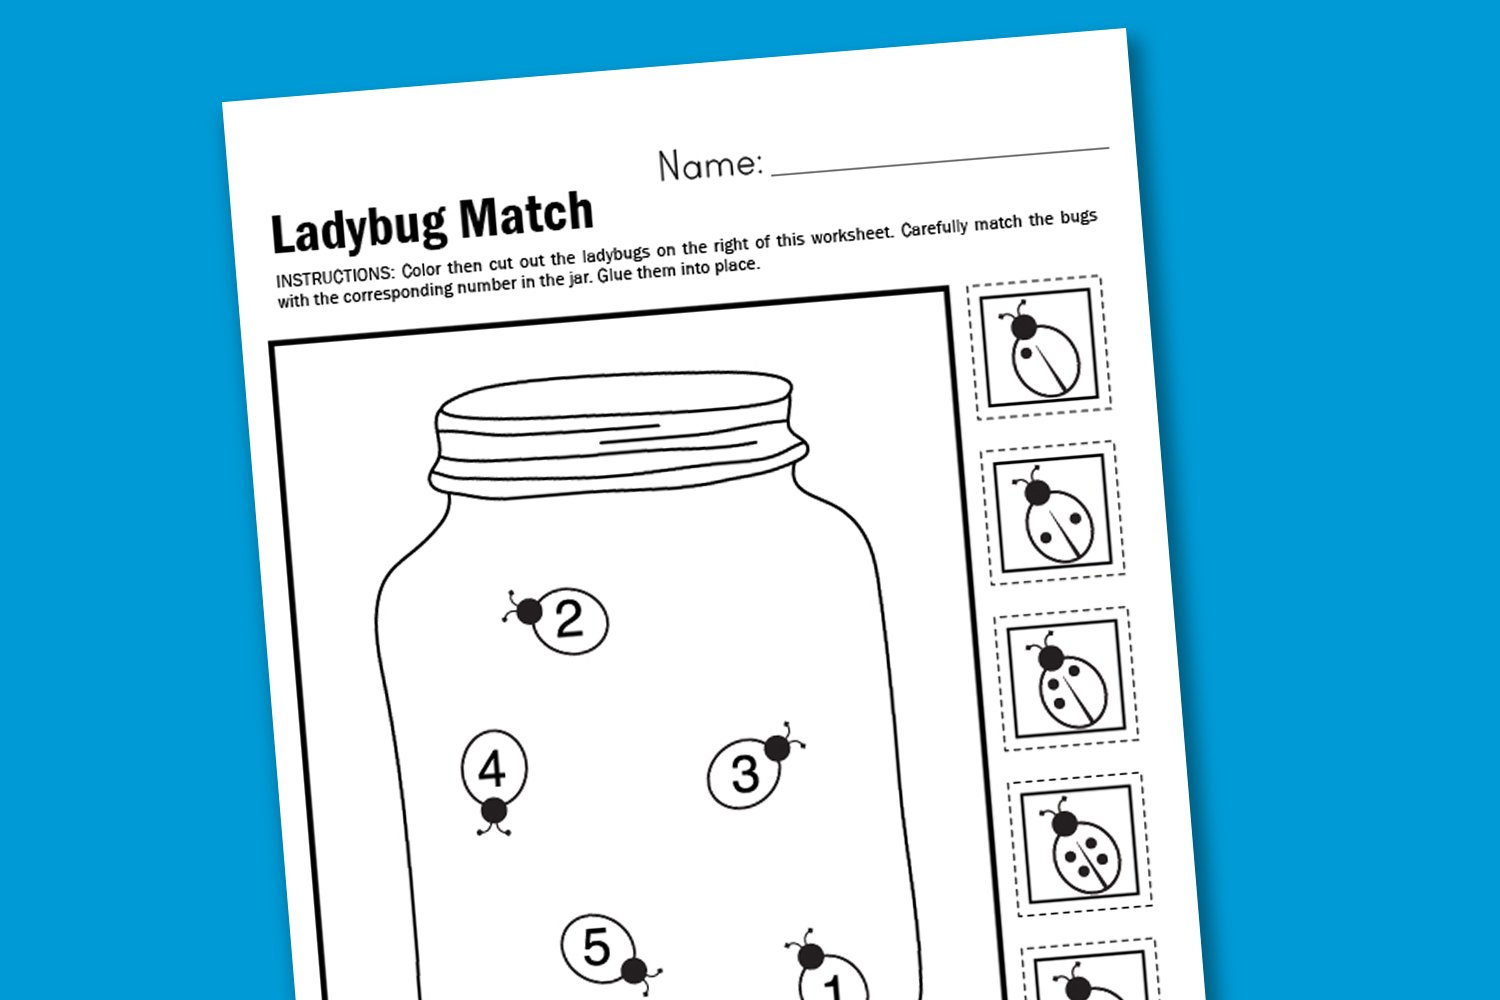 Worksheet Wednesday Ladybug Matching Paging Supermom